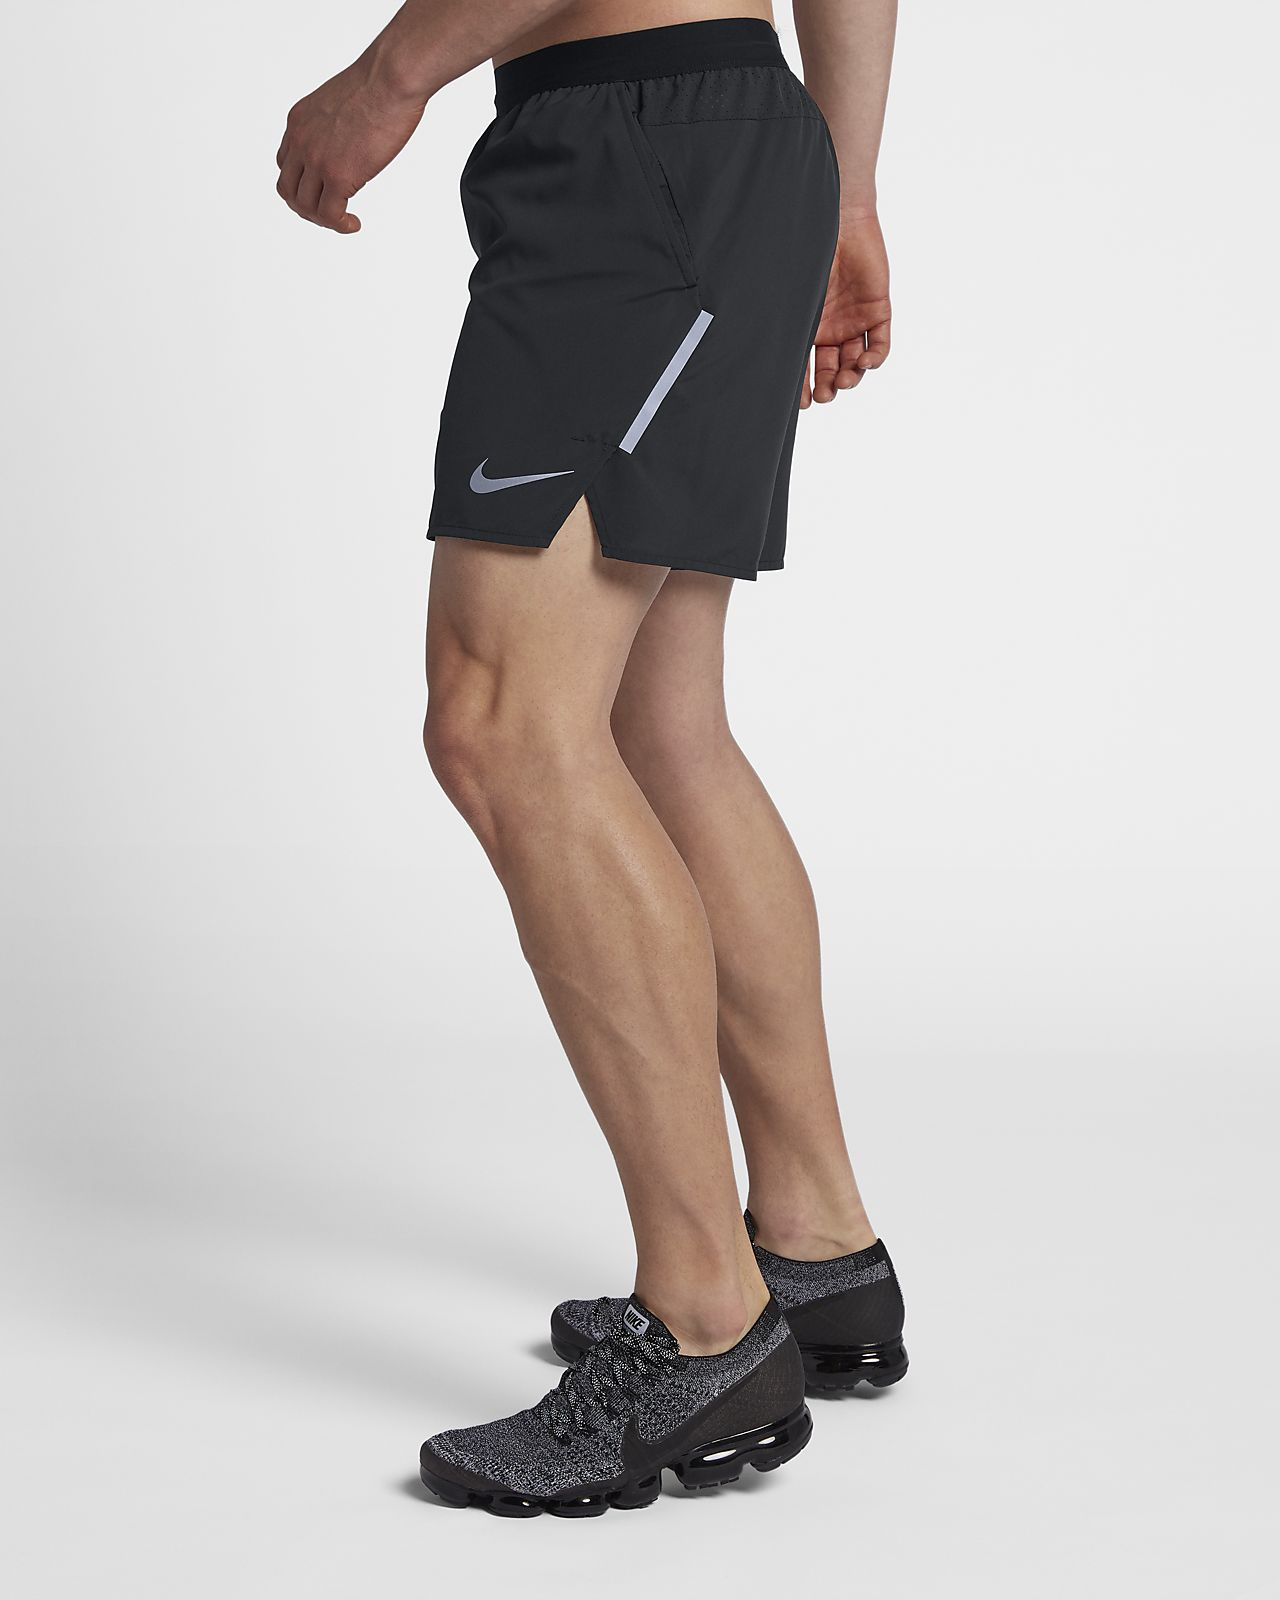 bb60978ab341 Lined Running Shorts Nike Flex Stride Men s 5